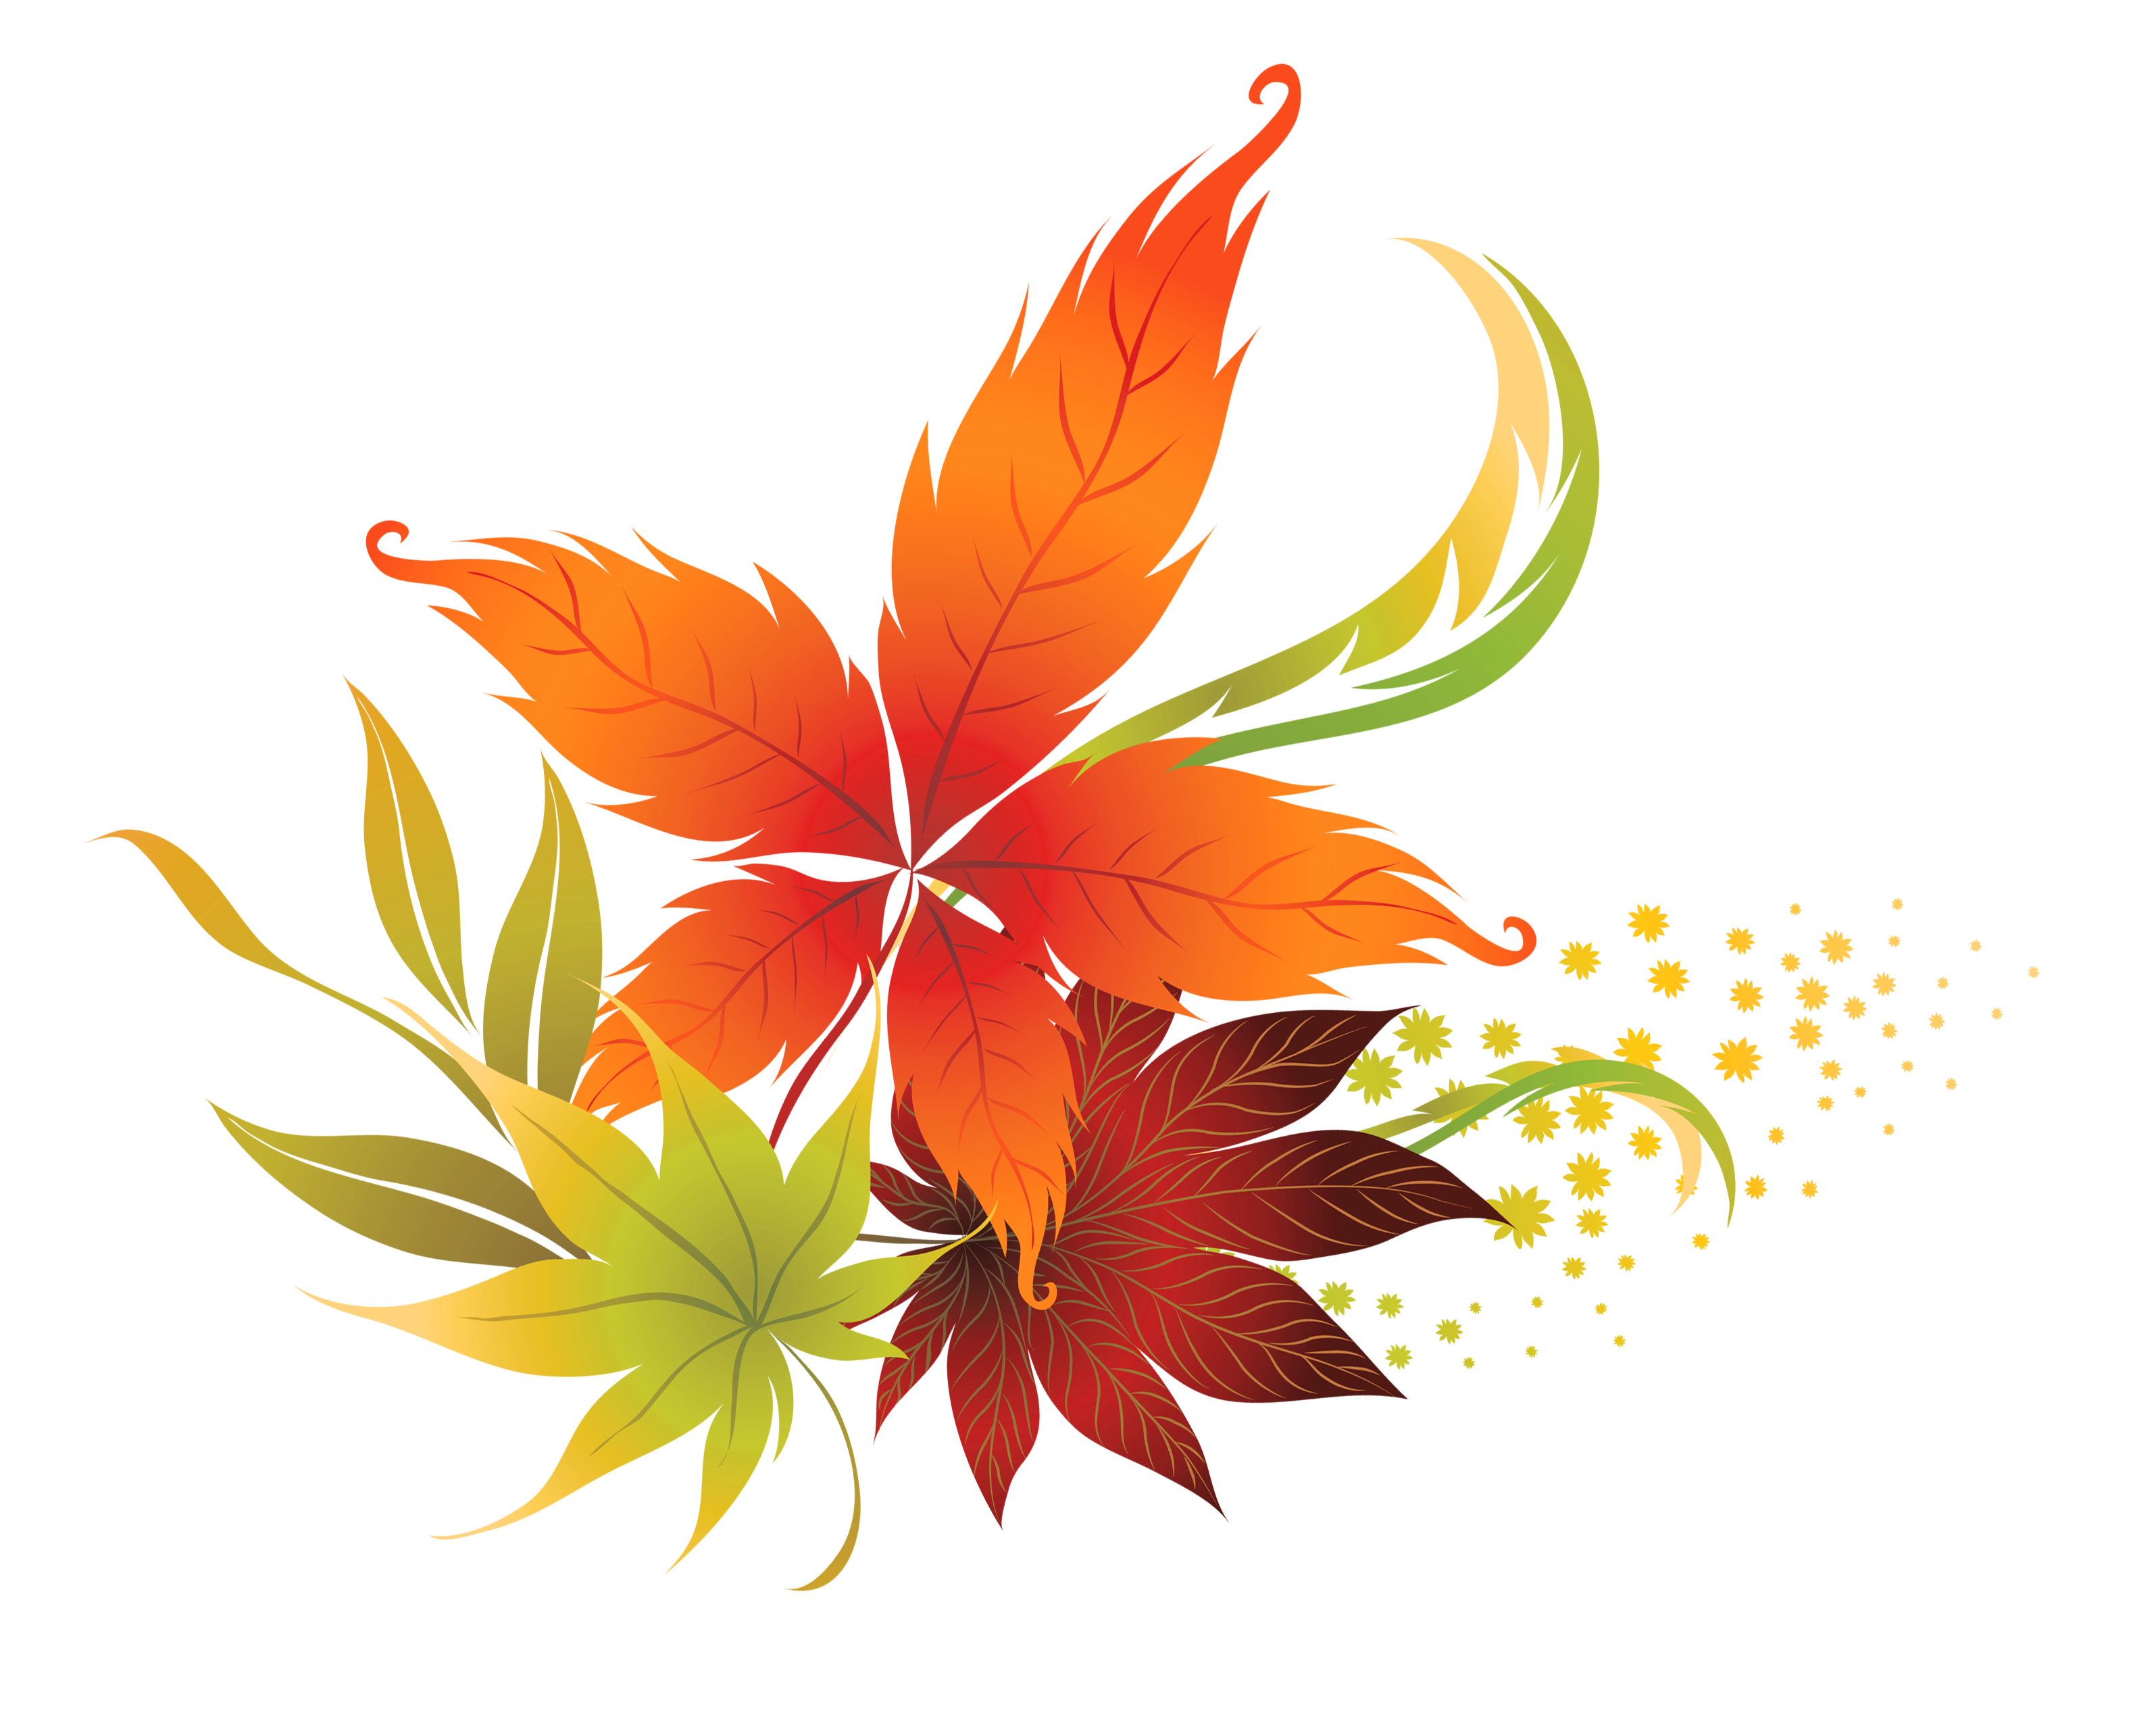 Thanksgiving clipart clear background. Fall leaves leaf no